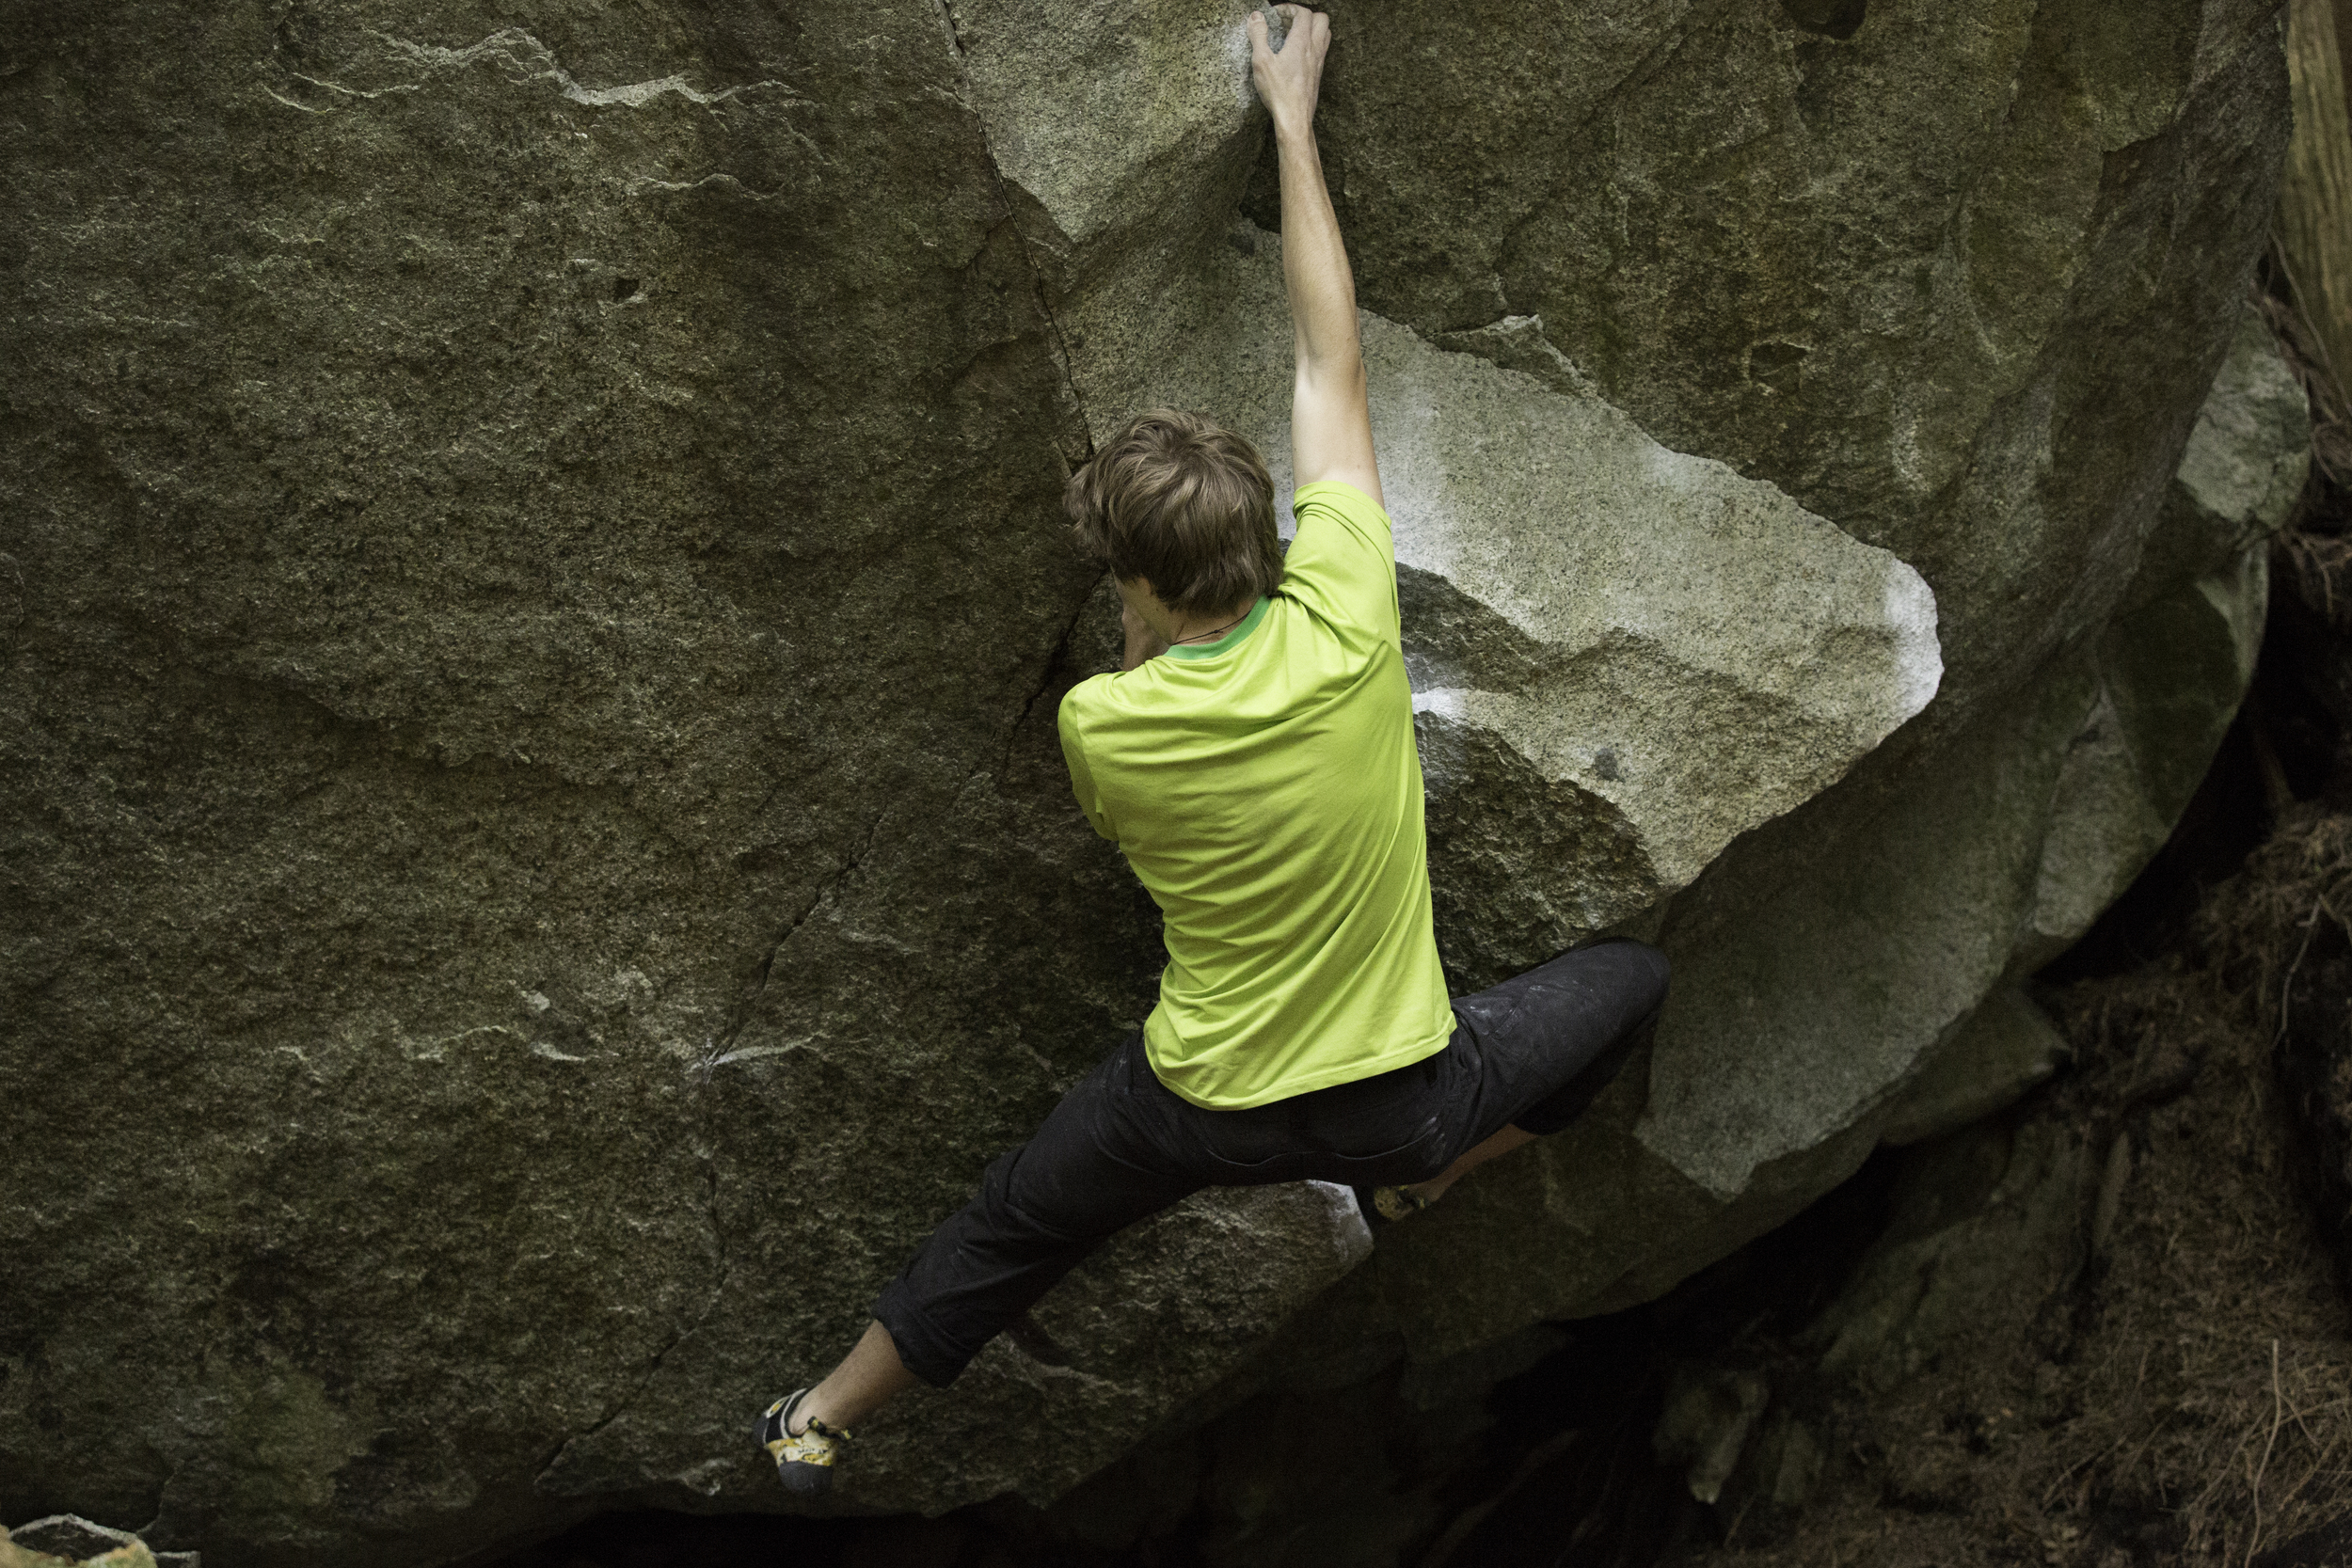 Andrew McKean nailing his first v8 (but he can climb v9 and v10, what?) on 'Missing in Action' v8, Squamish BC, Canada.